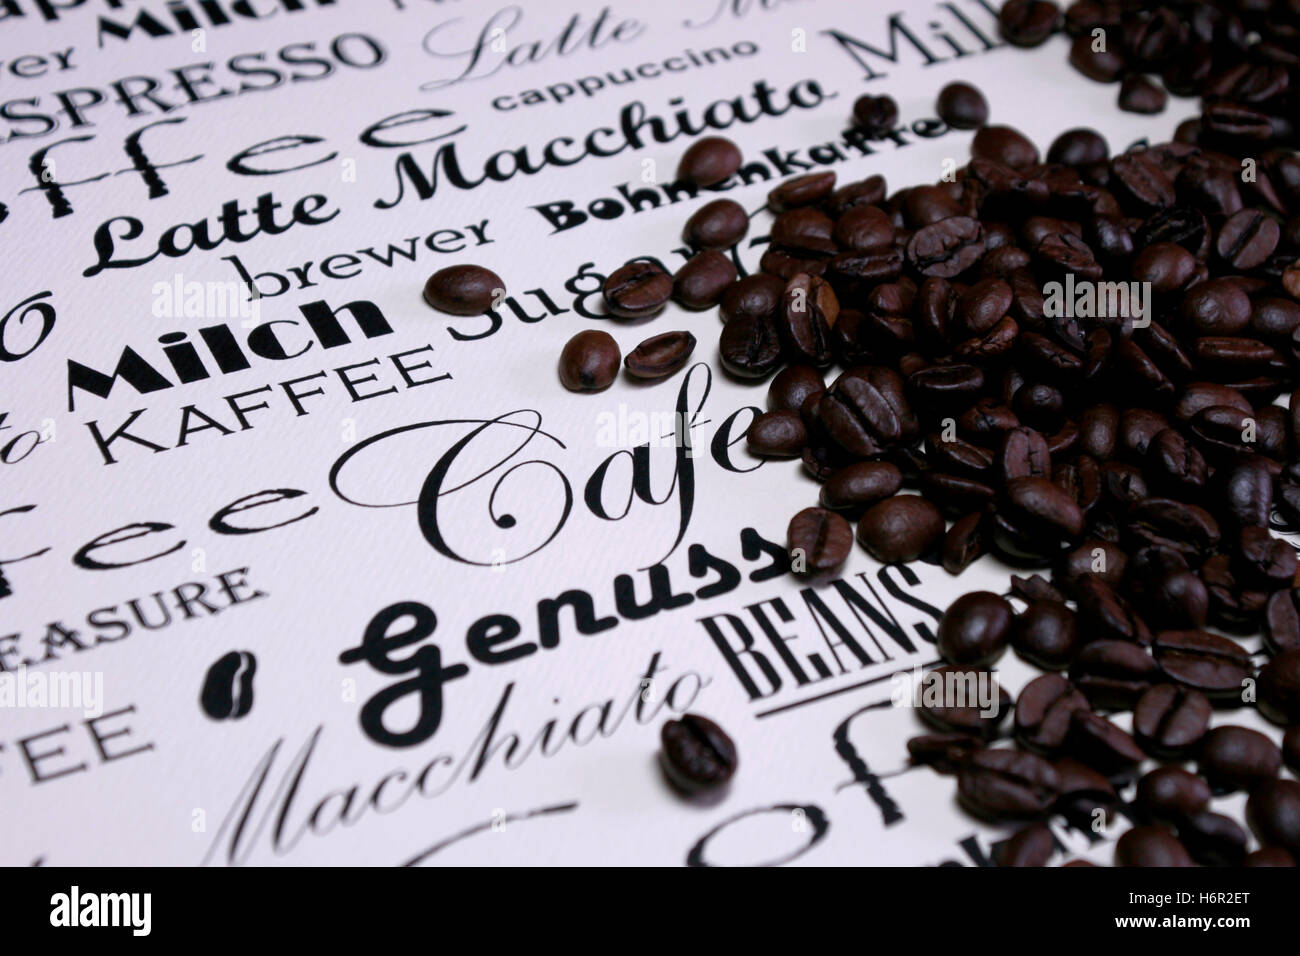 coffee beans with different scripts - Stock Image